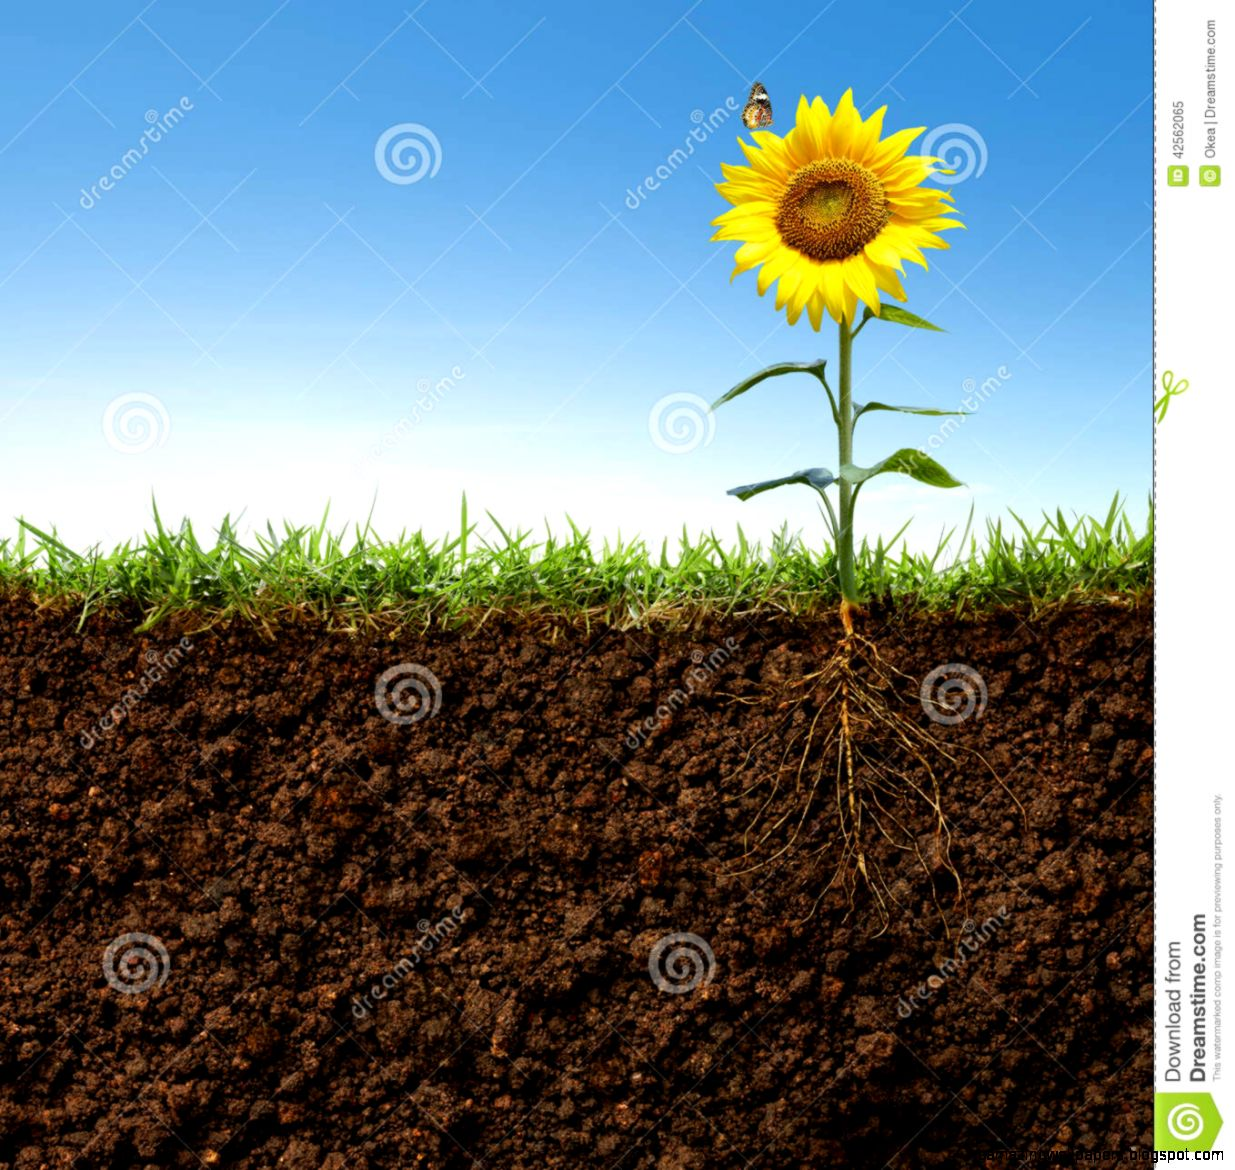 Sunflower With Roots Underground Stock Vector Image 63733978